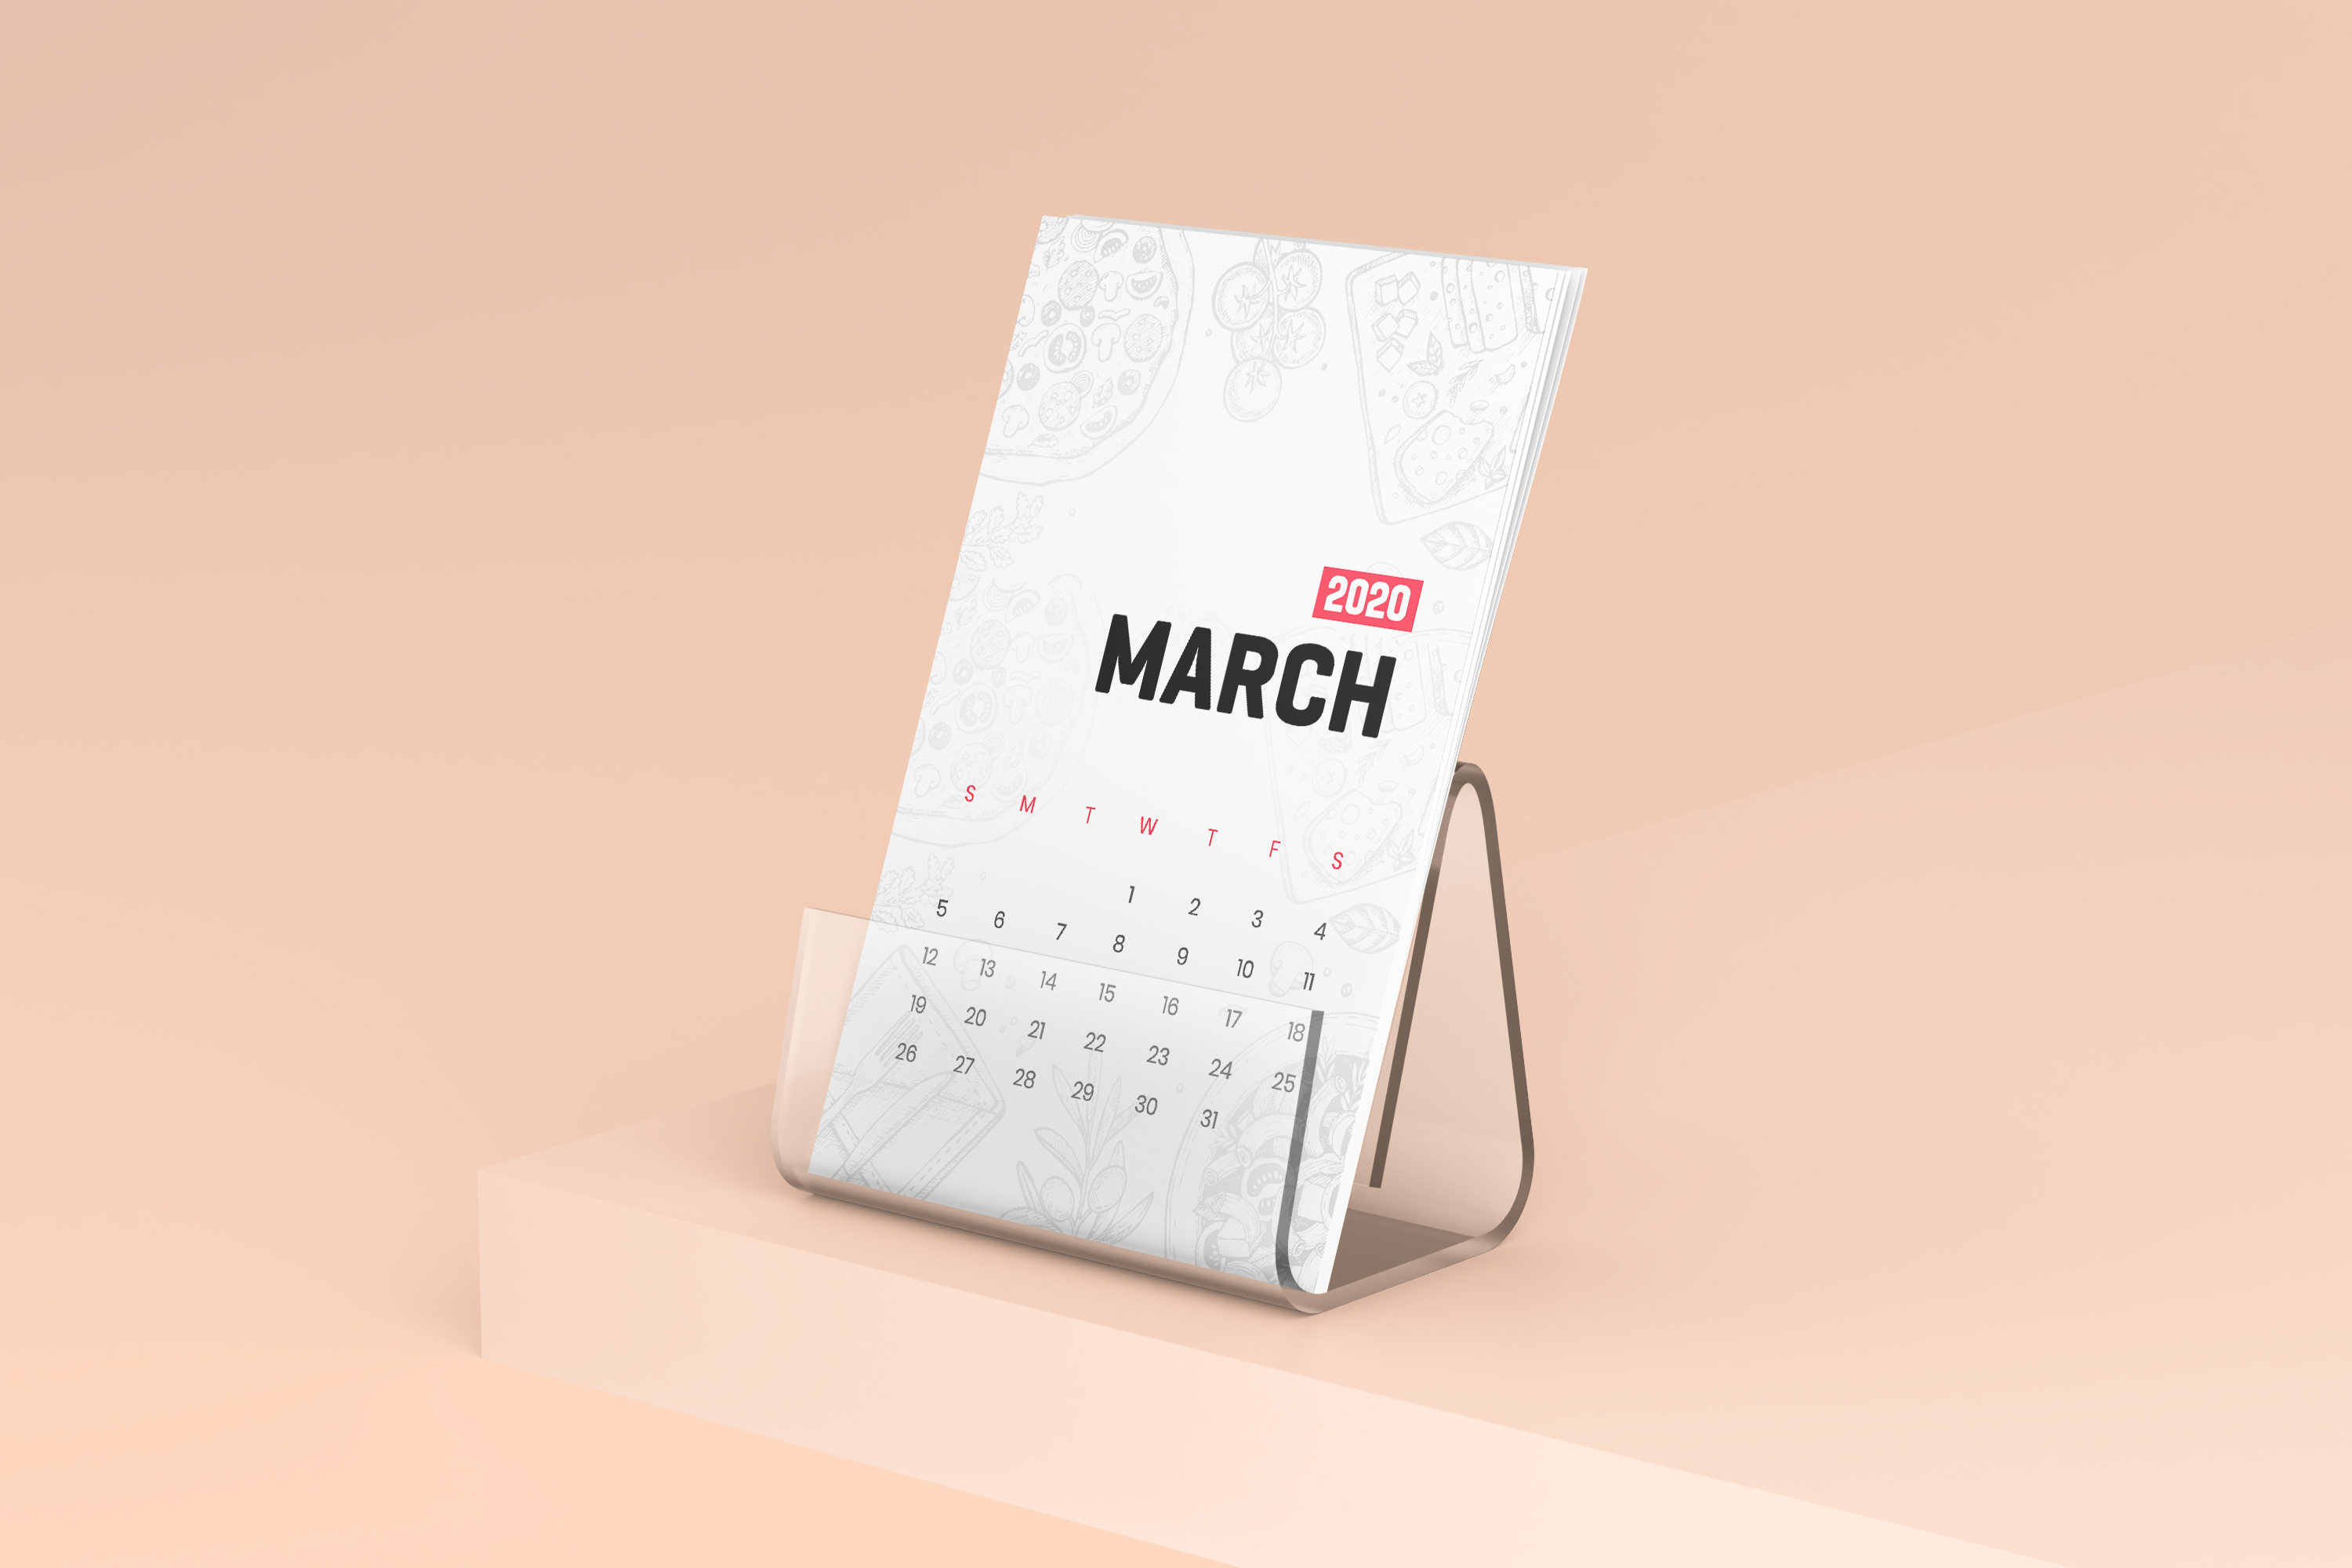 Desk Calendar With Plastic Stand Mockup example image 4